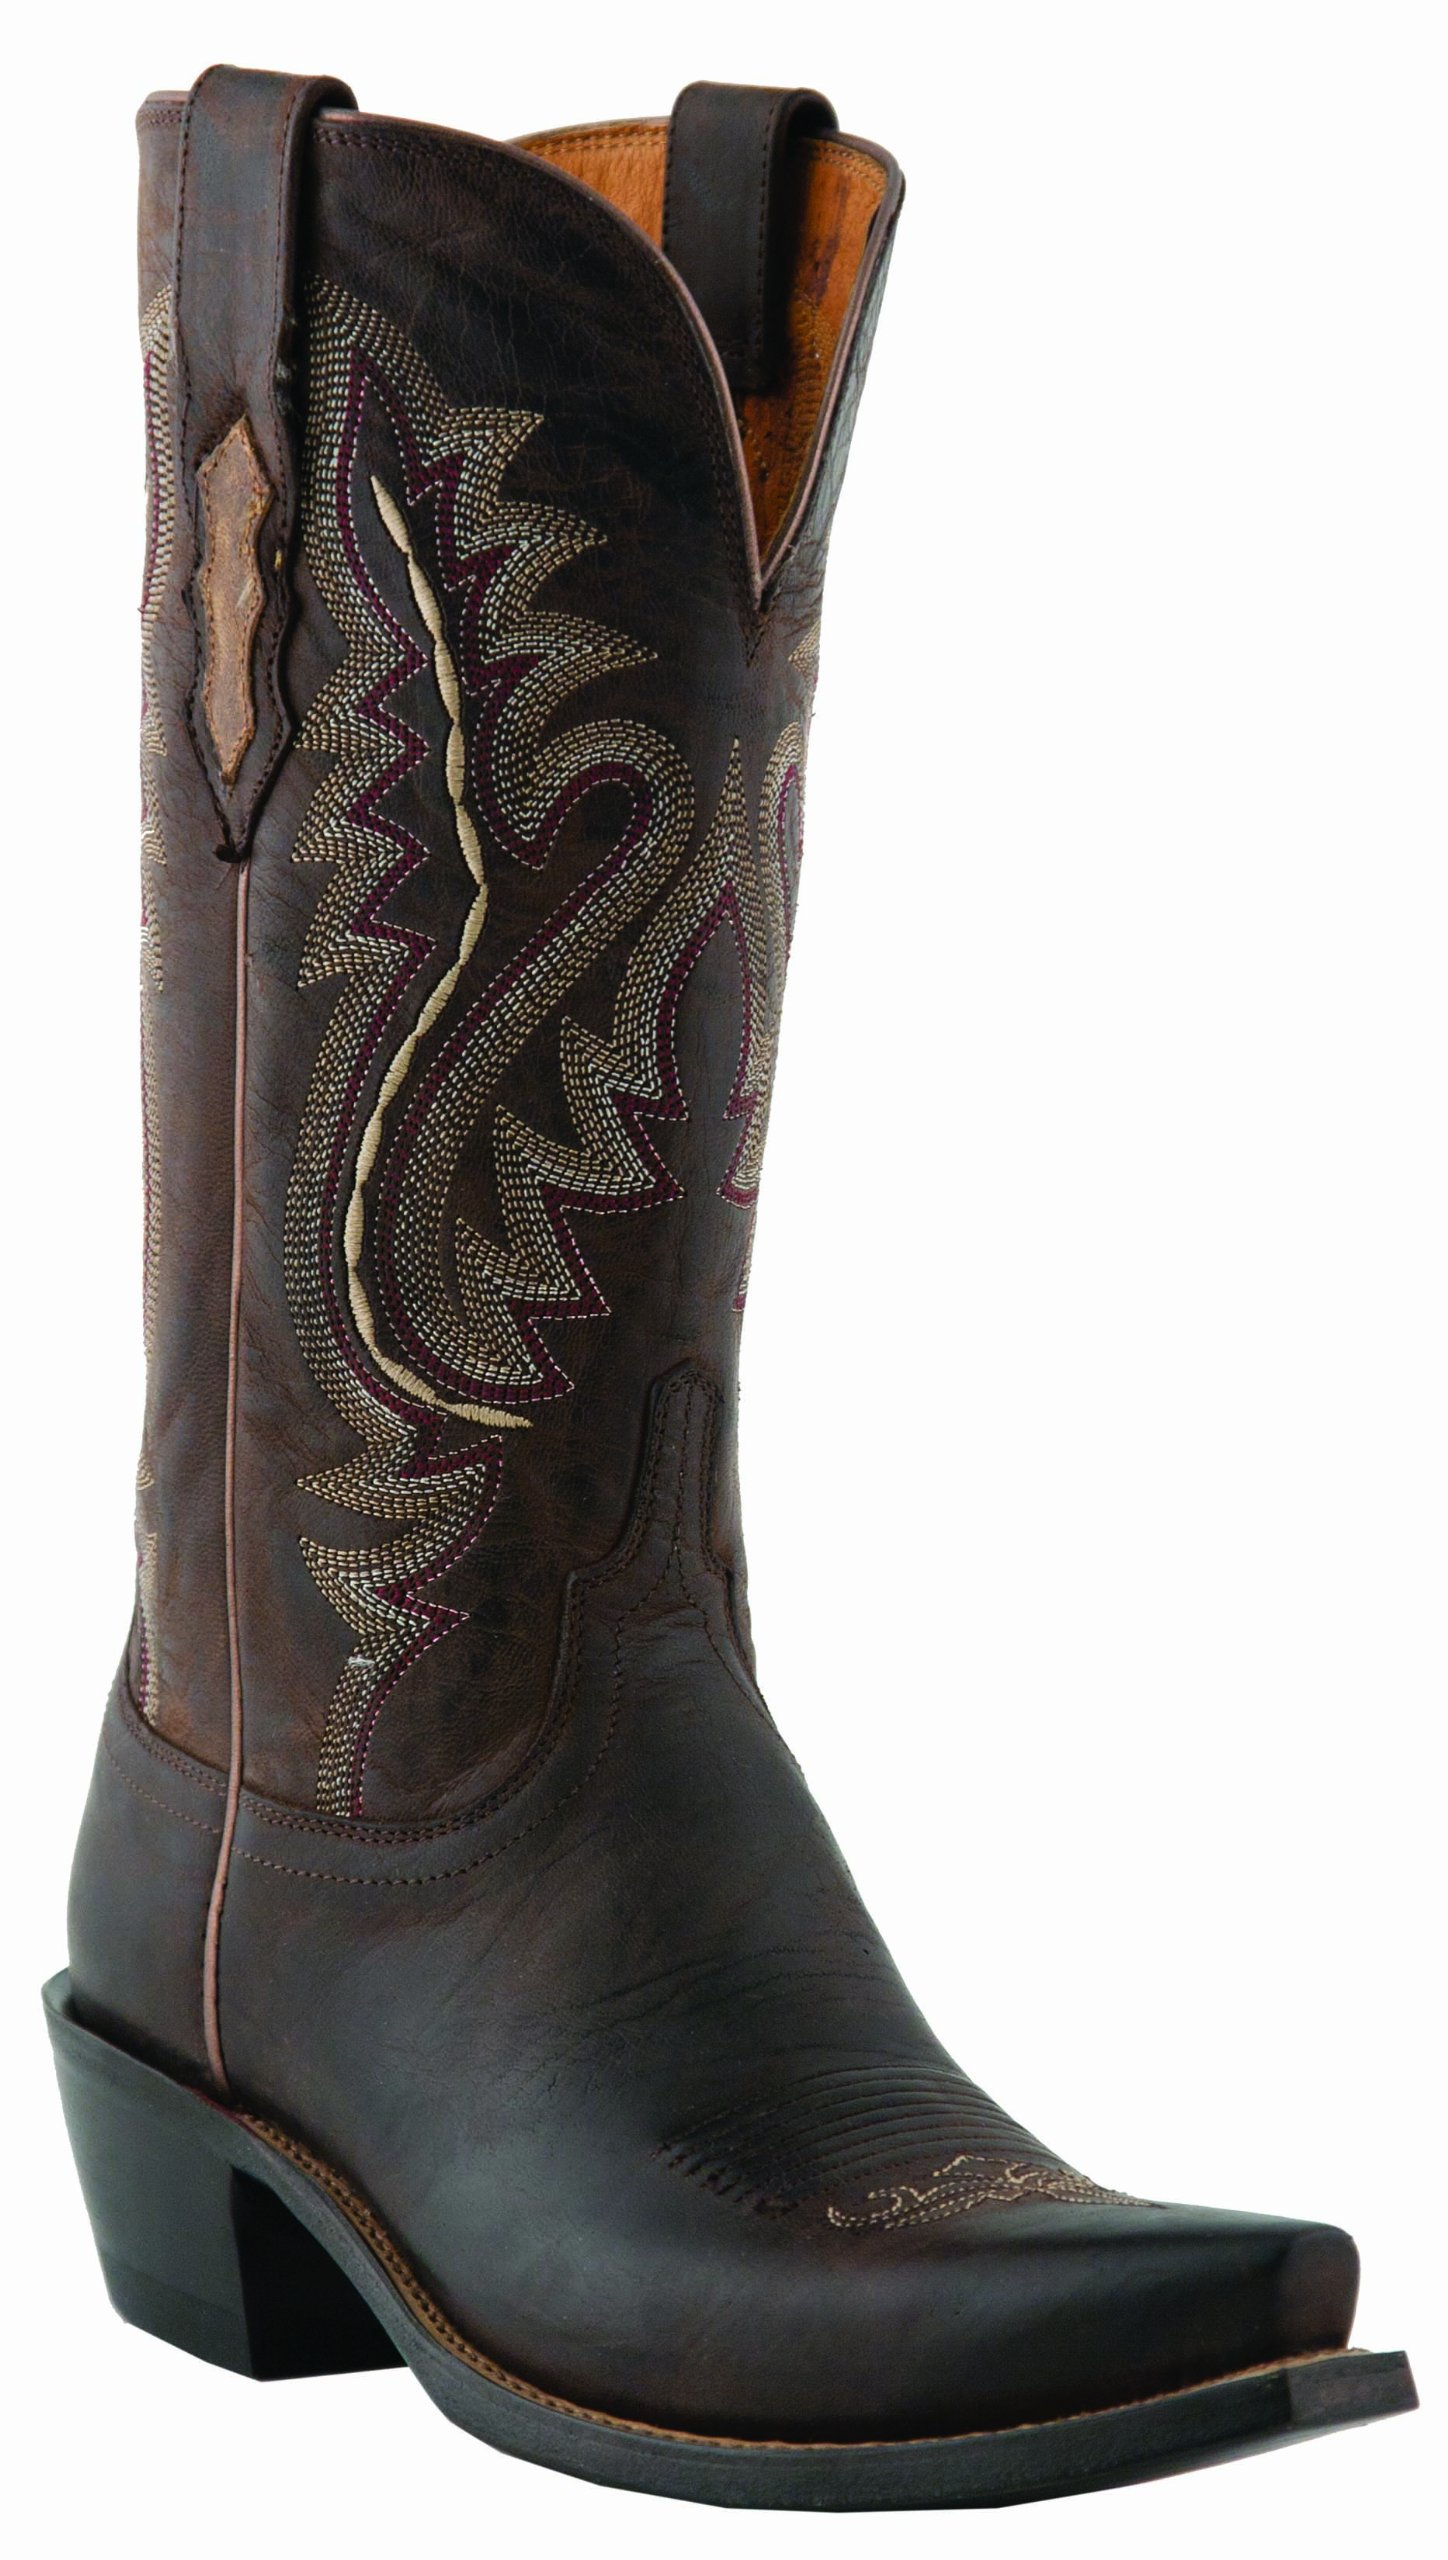 Lucchese Women's Handcrafted 1883 Madras Goat Cowgirl Boot Snip Toe Chocolate 9 M US